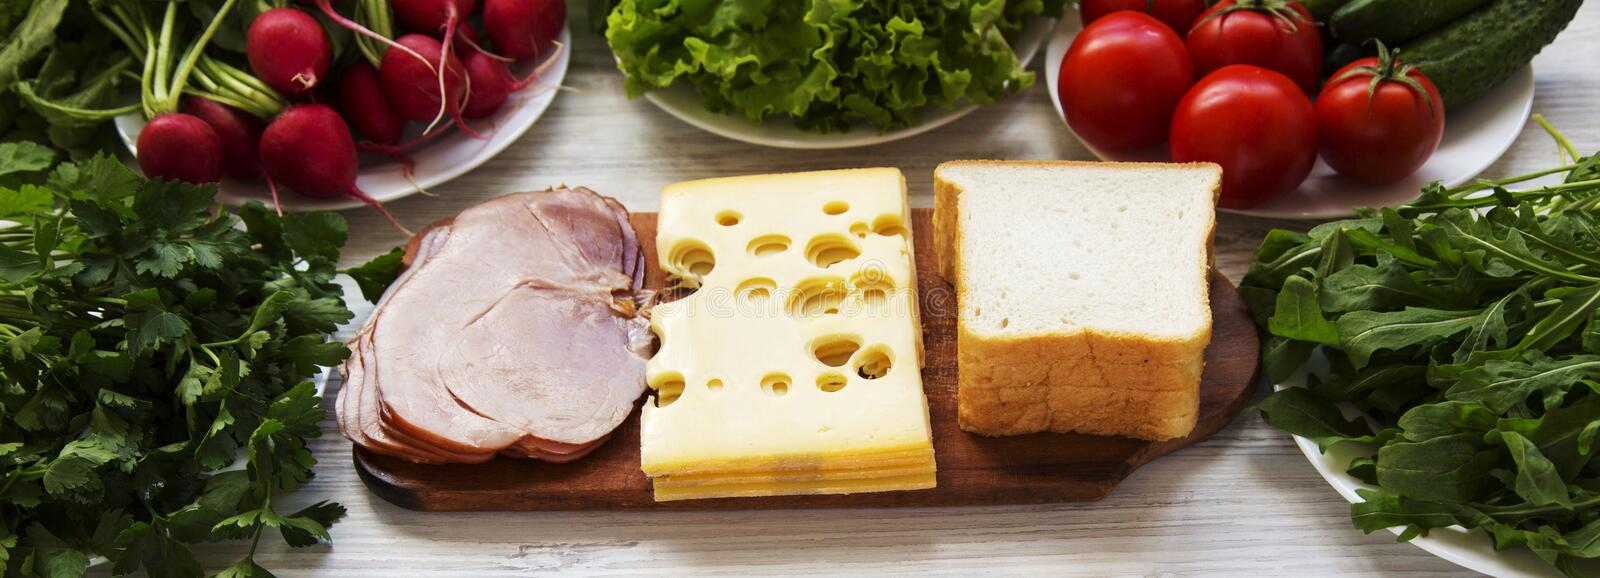 Set of ingredients for making school lunch: bread, vegetables, cheese and bacon on white wooden surface. Healthy eating, side view royalty free stock photography